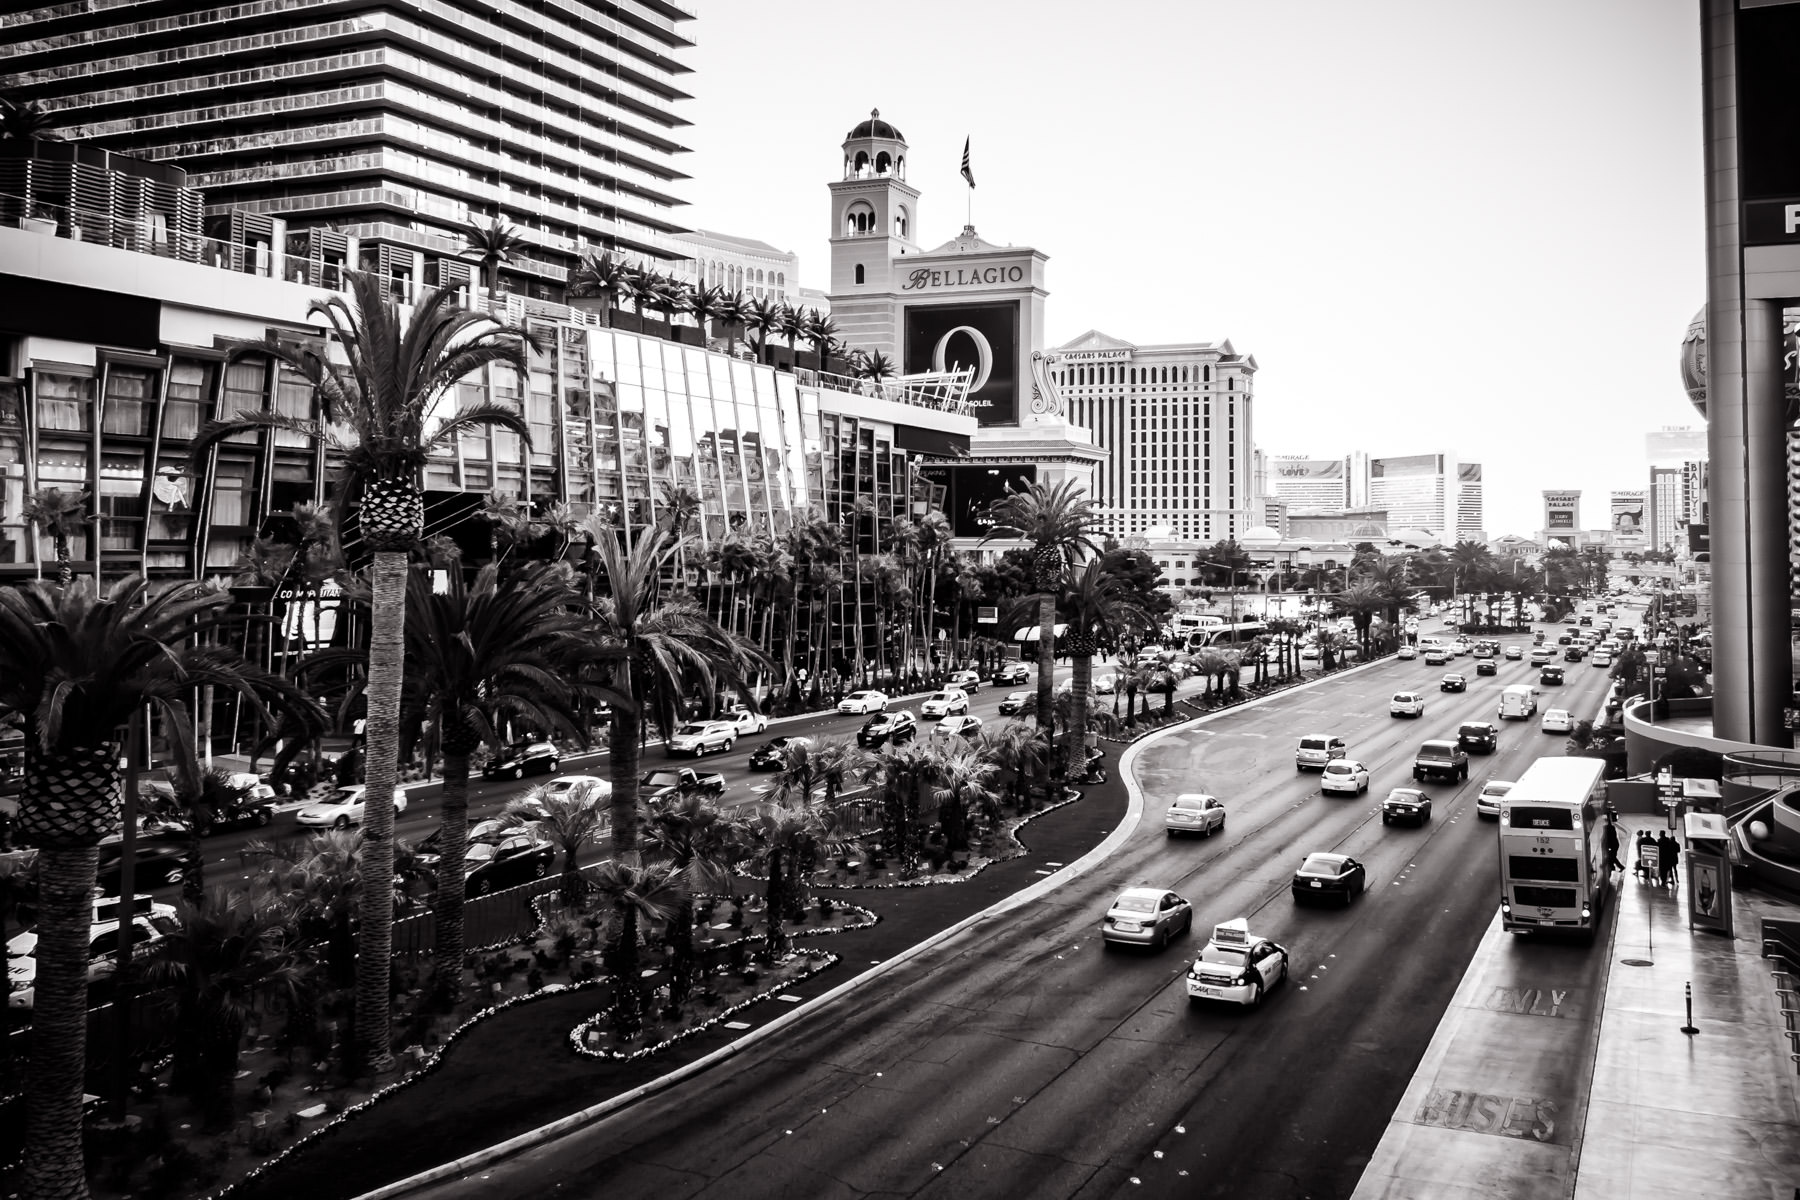 The Las Vegas Strip as seen from in front of Planet Hollywood, opposite of the Cosmopolitan of Las Vegas.